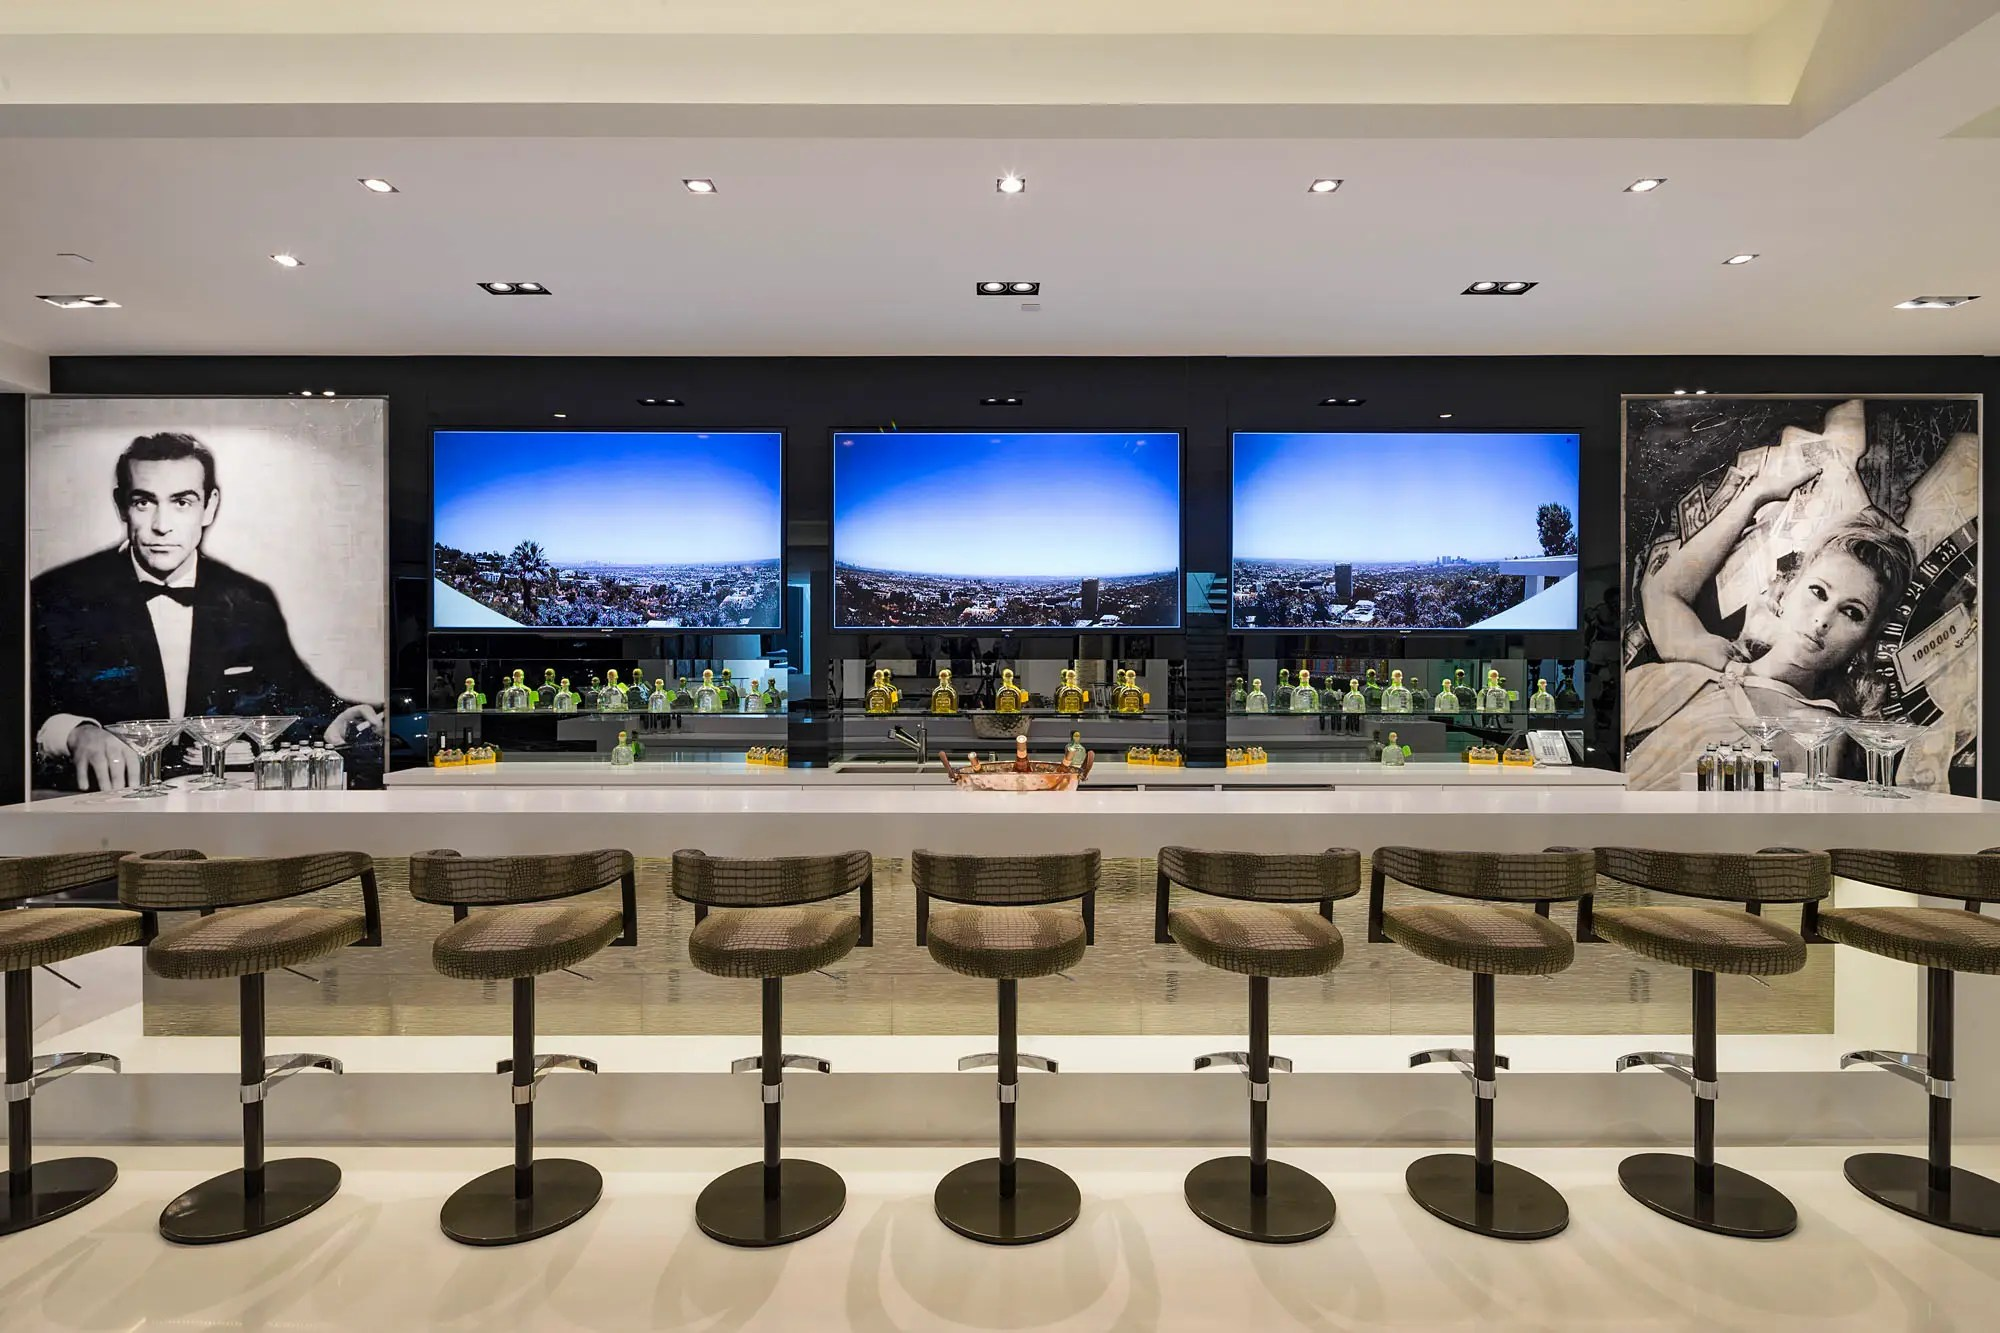 There's also a fully stocked bar with ample bar stools.